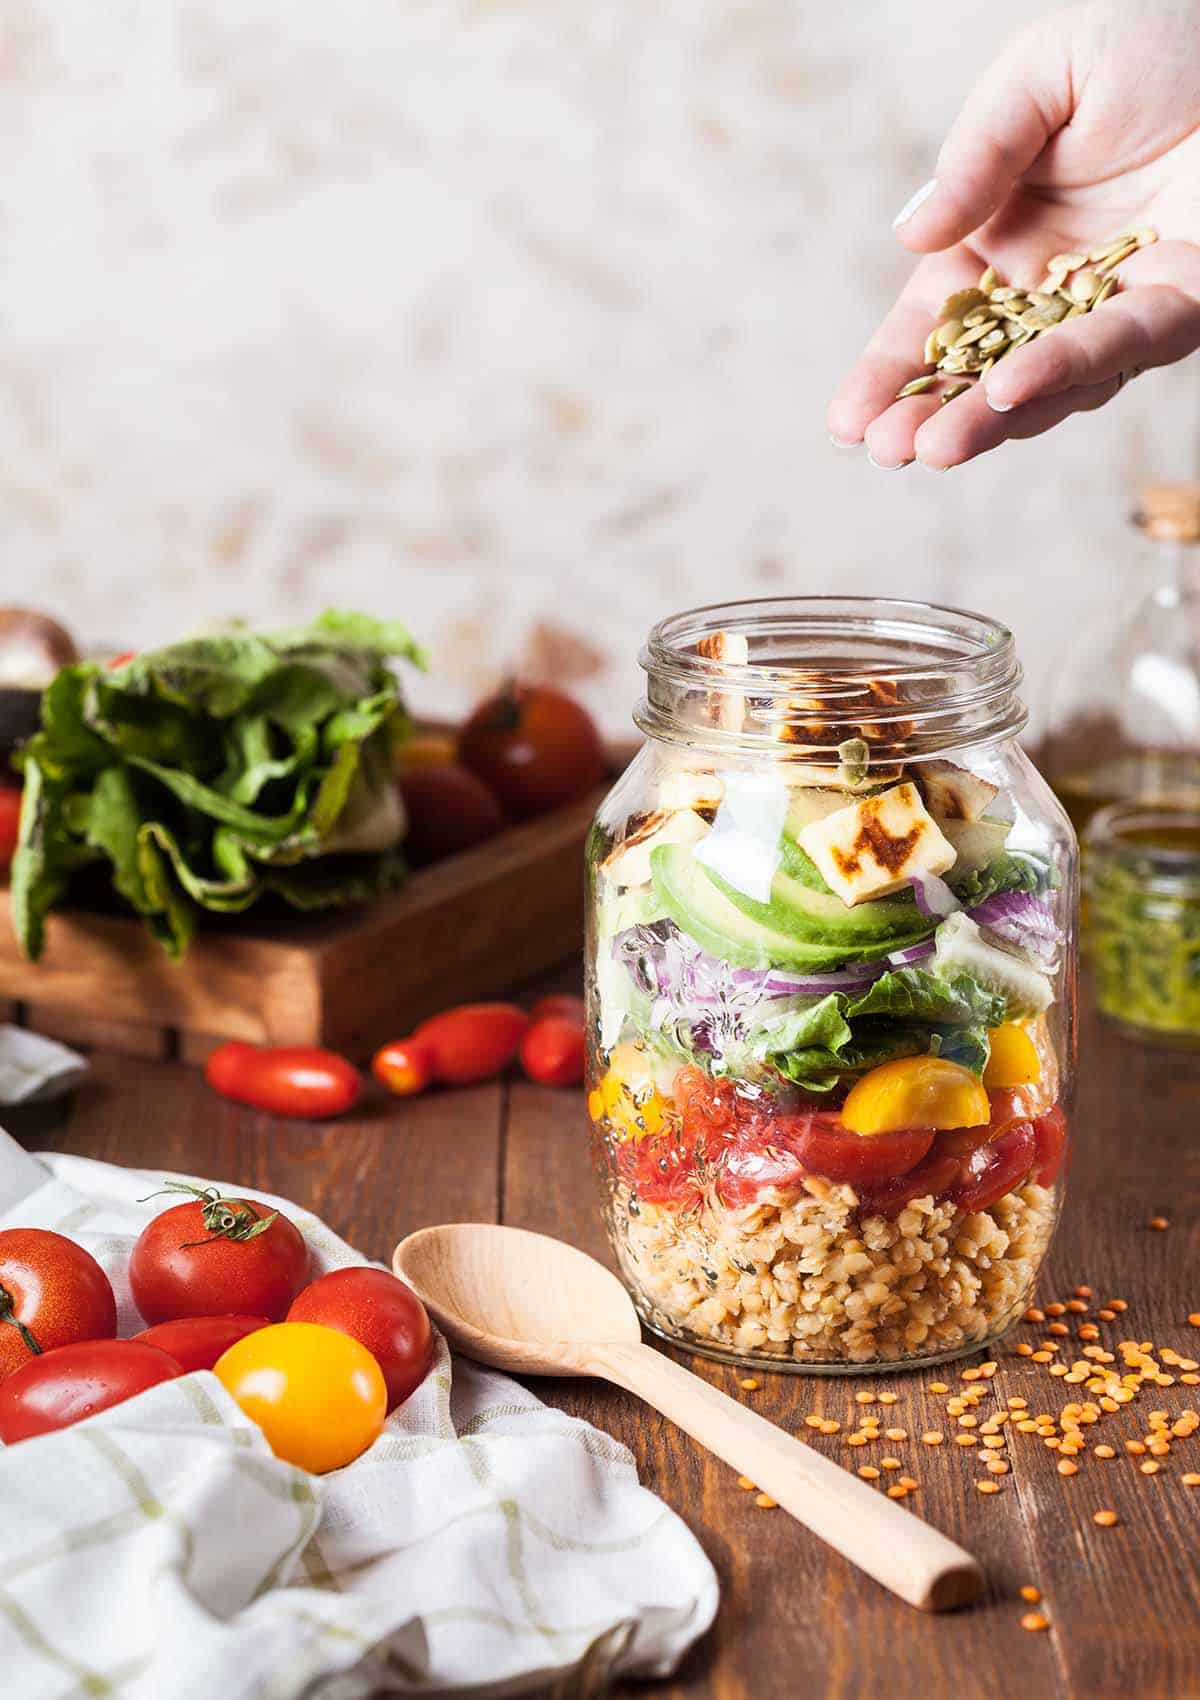 Several salad ingredients in a jar with a hand sprinkling some seeds on top.